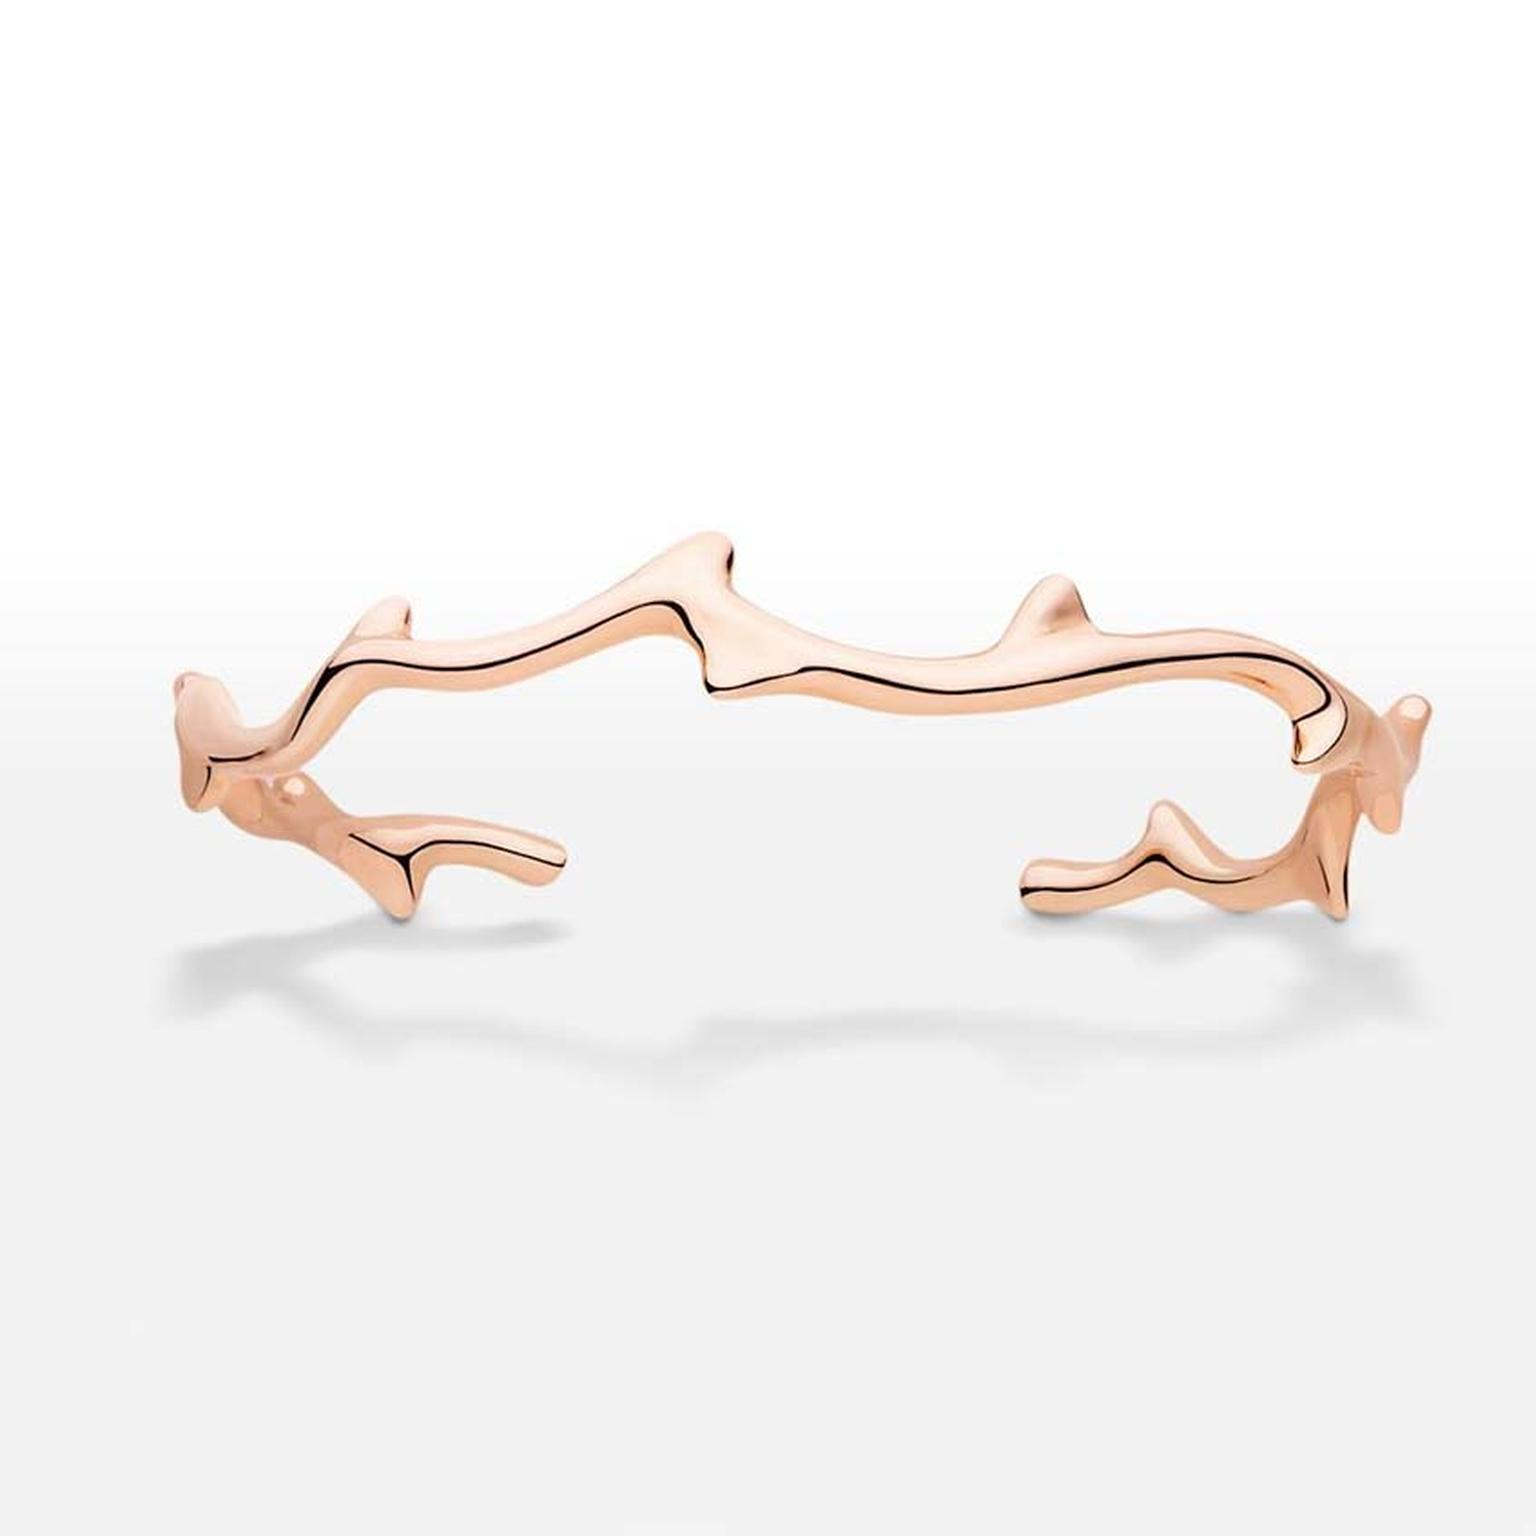 Rose gold Dior bracelet from the Bois de Rose collection, which pays homage to Christian Dior's favourite flower.